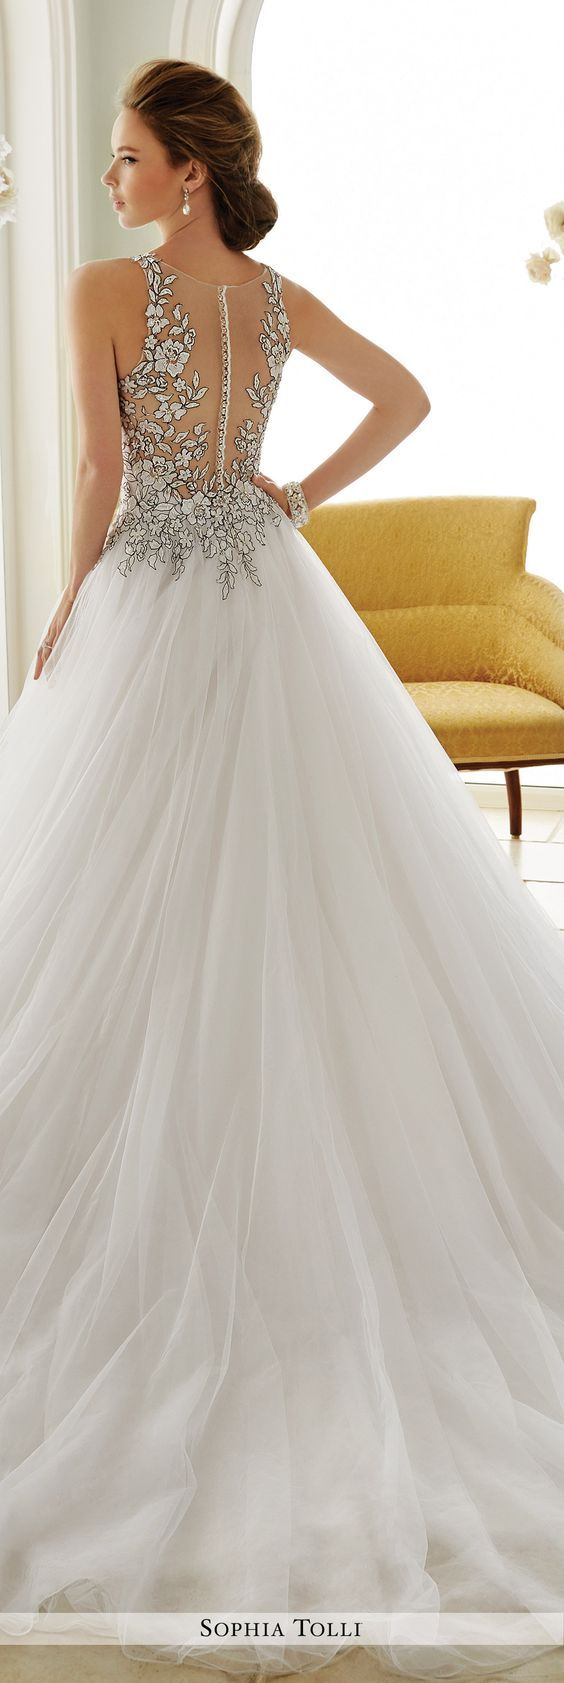 Sophia tolli fall 2016 wedding gown collection style no for Sophia tulle wedding dress